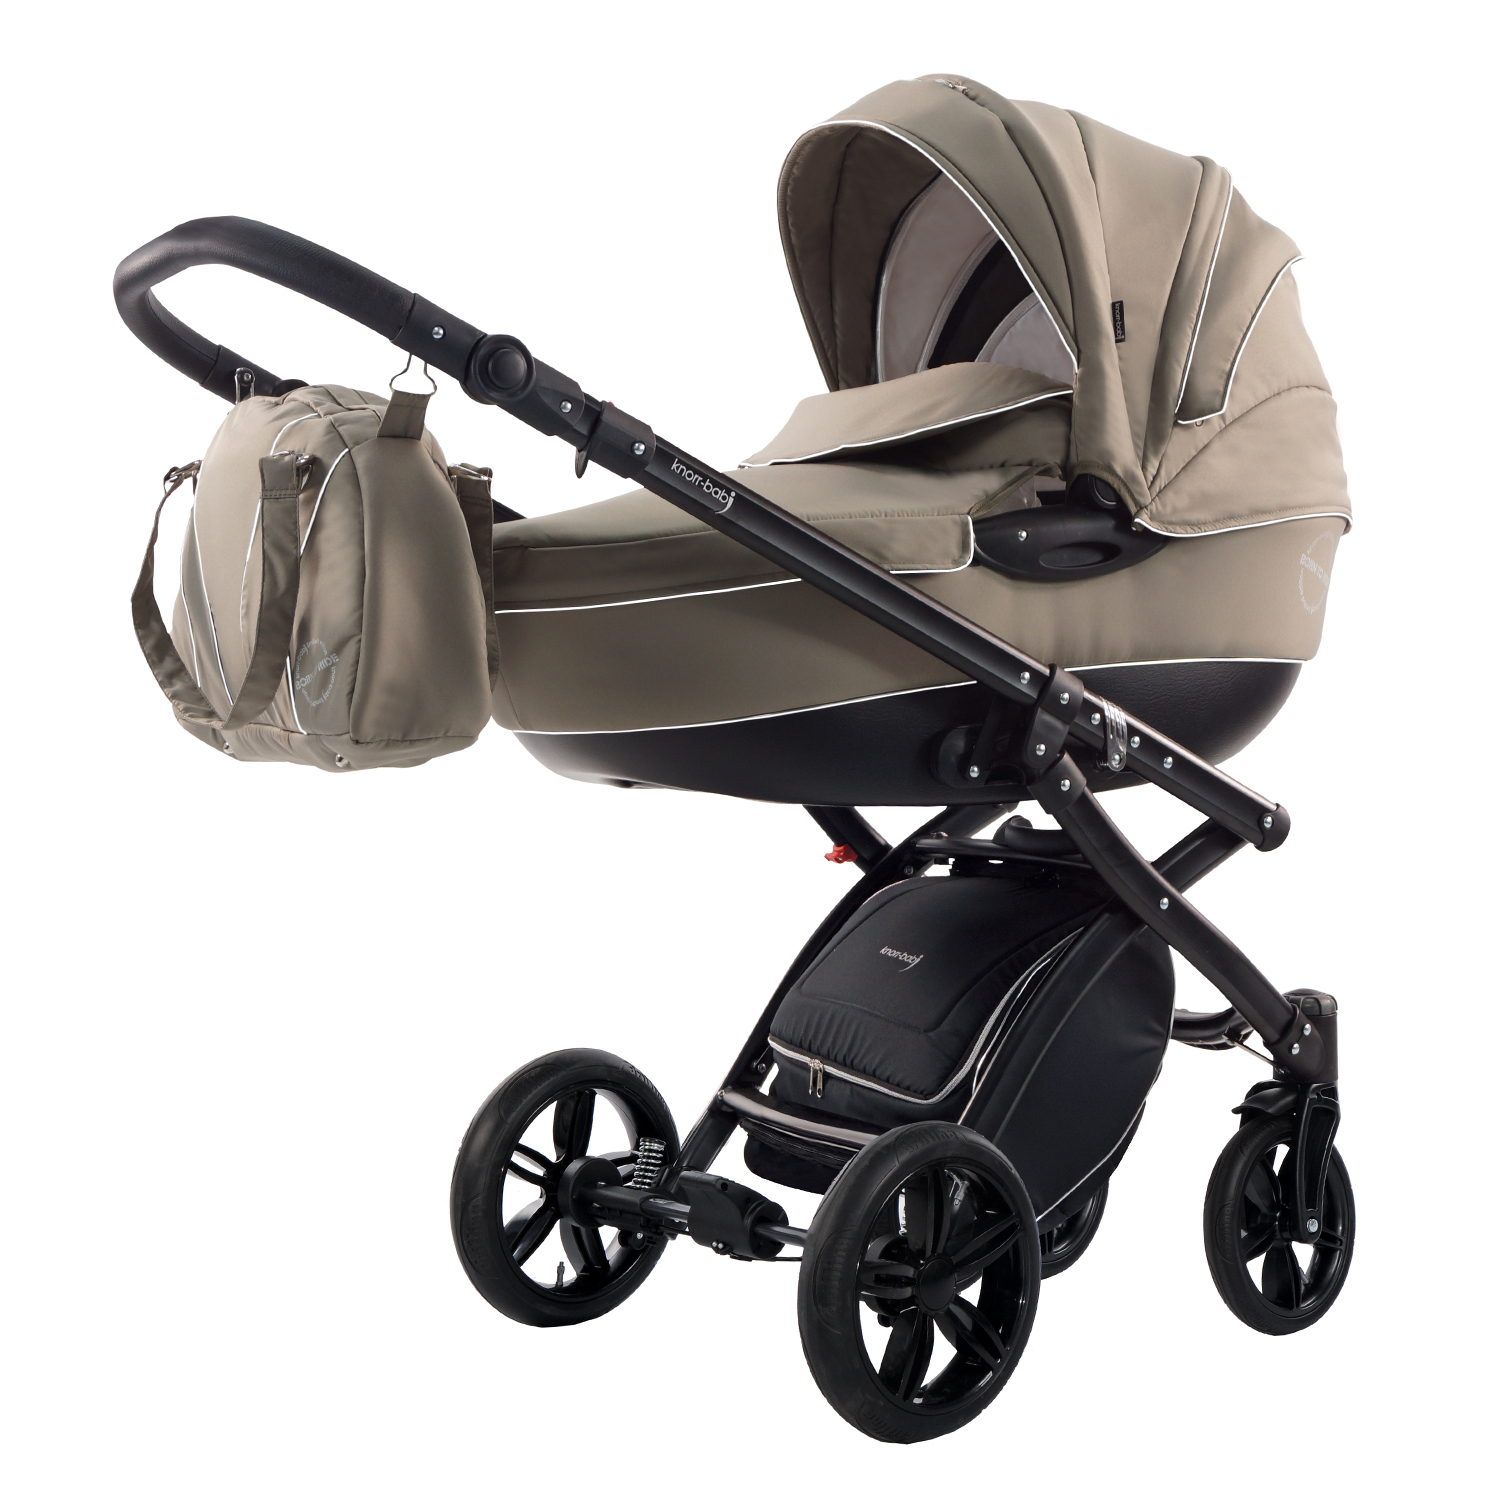 knorr baby gmbh kombi kinderwagen alive born to ride beige online kaufen. Black Bedroom Furniture Sets. Home Design Ideas